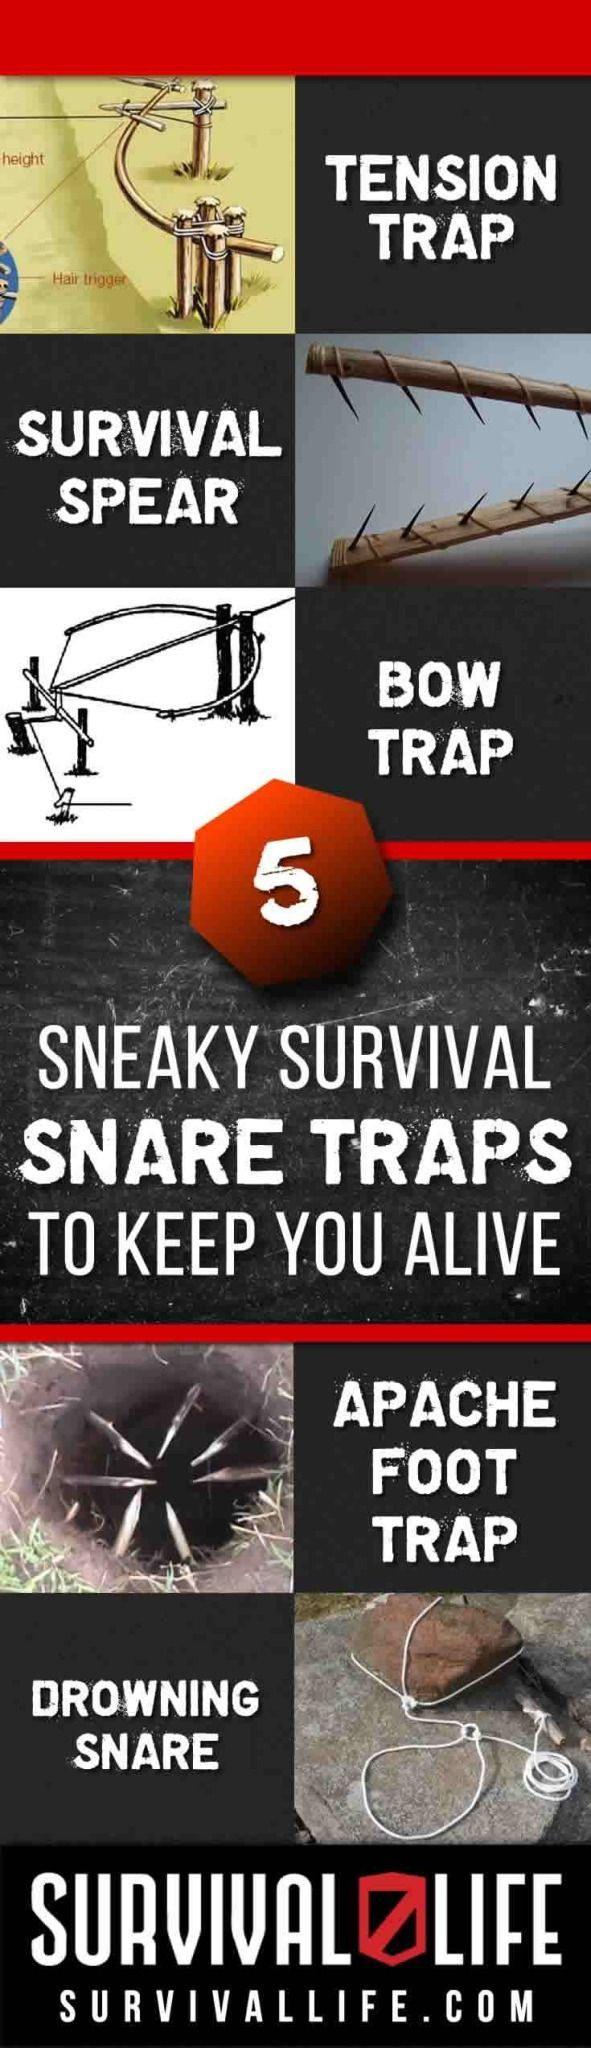 Sneaky Survival Snare Traps To Keep You Alive - Survival Life - Survival Life